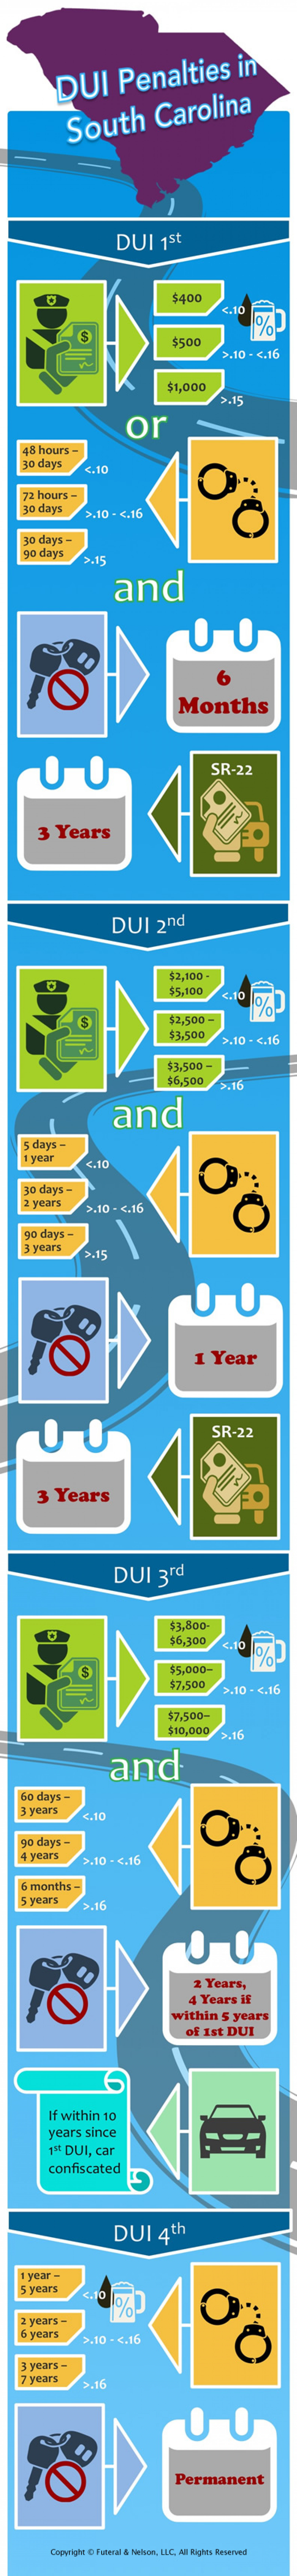 Penalties for a DUI in South Carolina Infographic